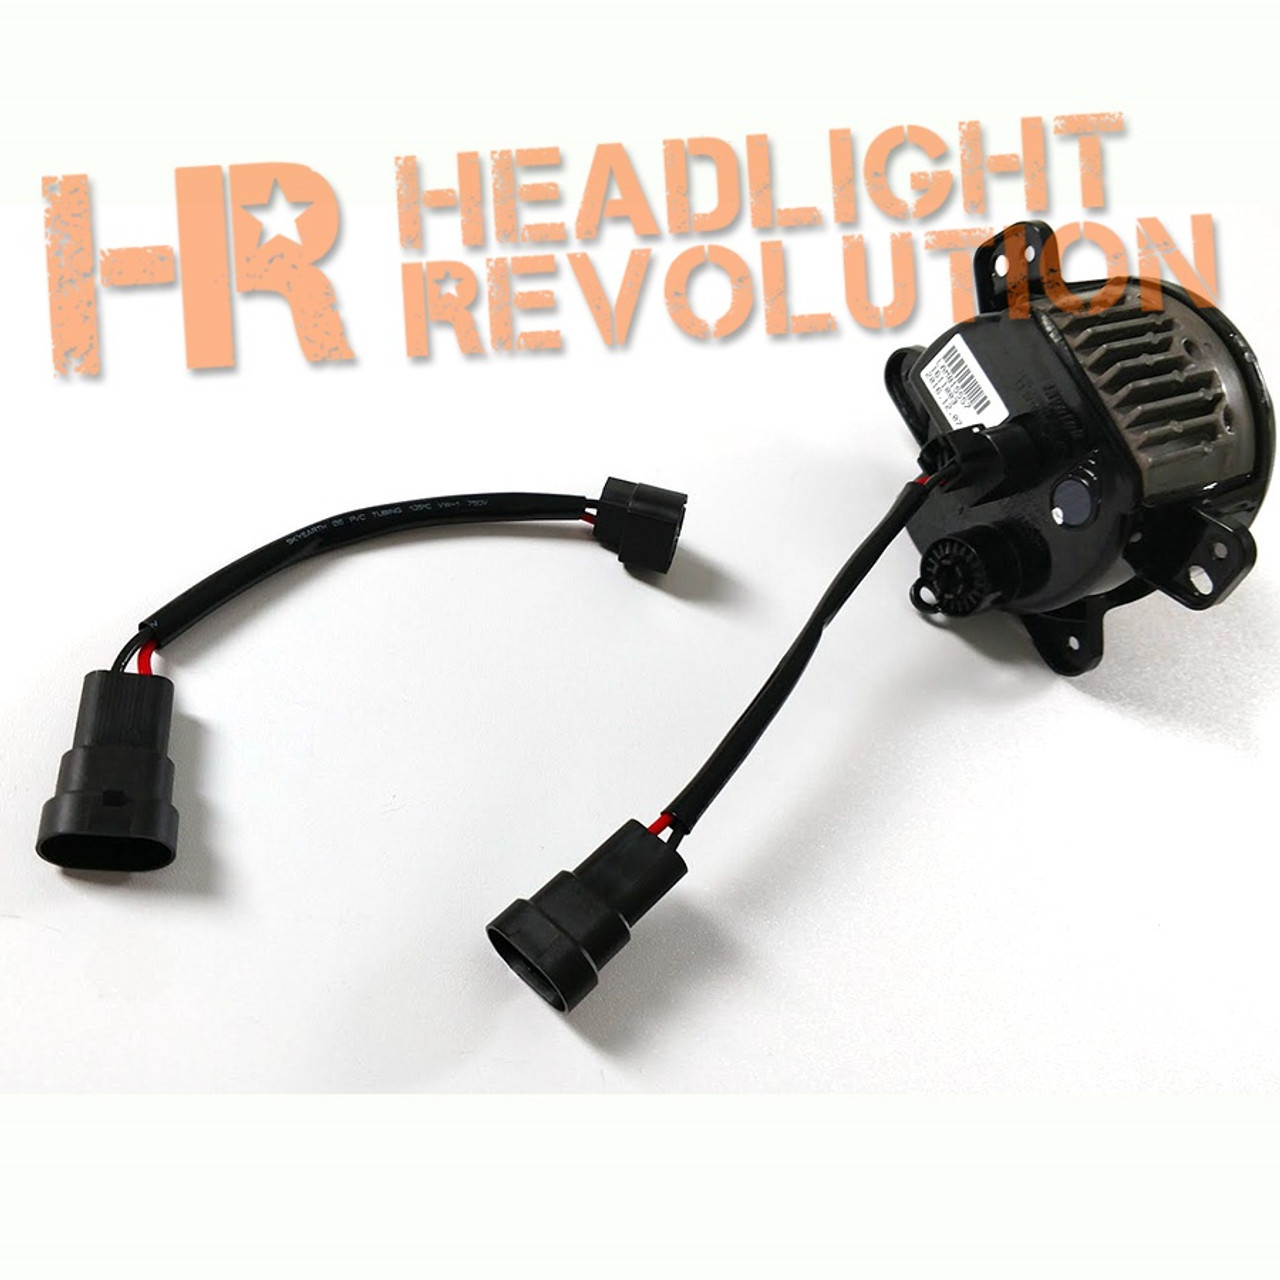 medium resolution of  headlight revolution 9005 male to 2504 adapter wire harnesses on vw beetle headlight